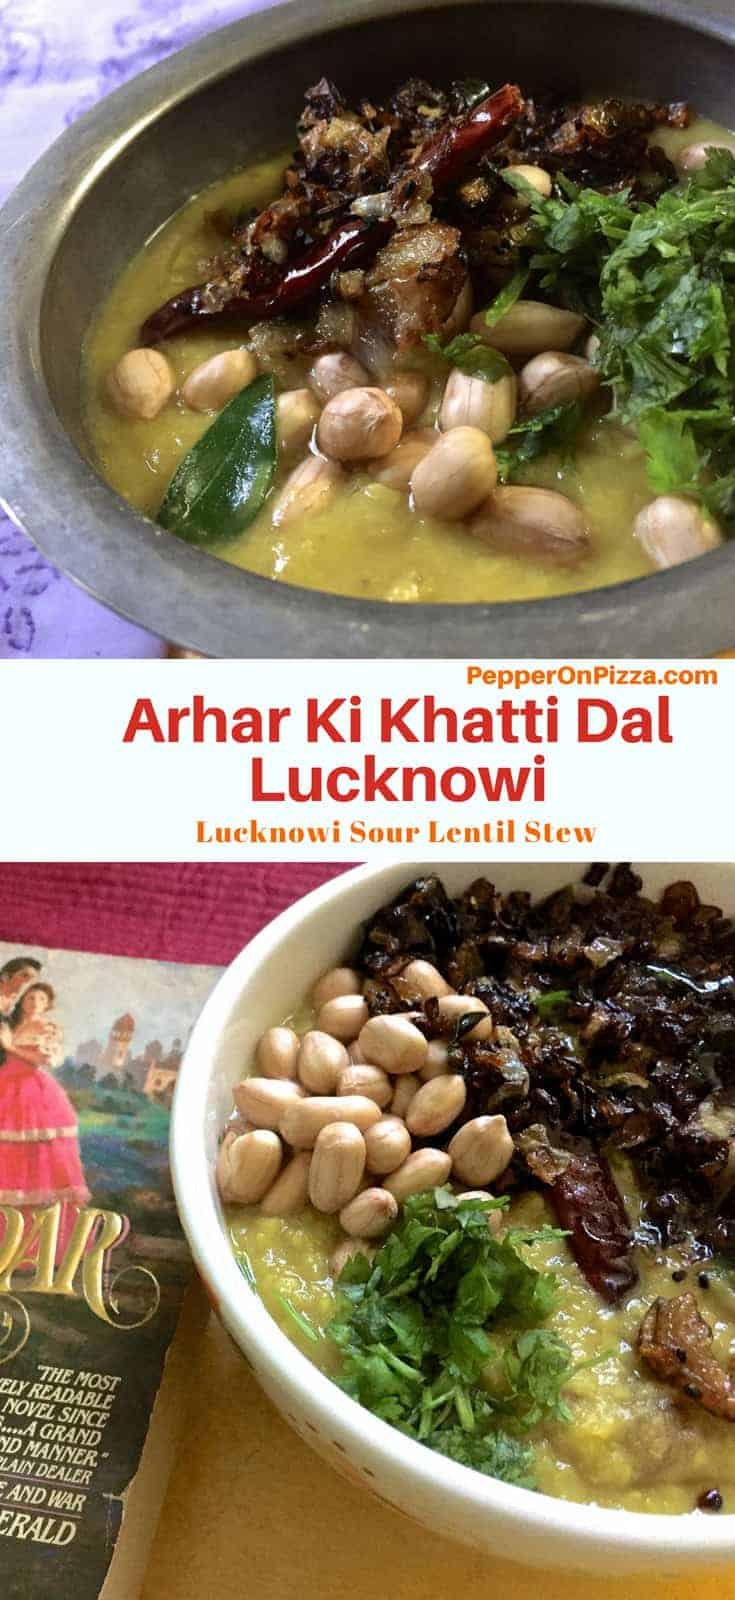 Arhar ki Khatti Dal made in the traditional Lucknowi style and garnished with raw peanuts soaked in water, tempered in ghee with onion, garlic, and chilli